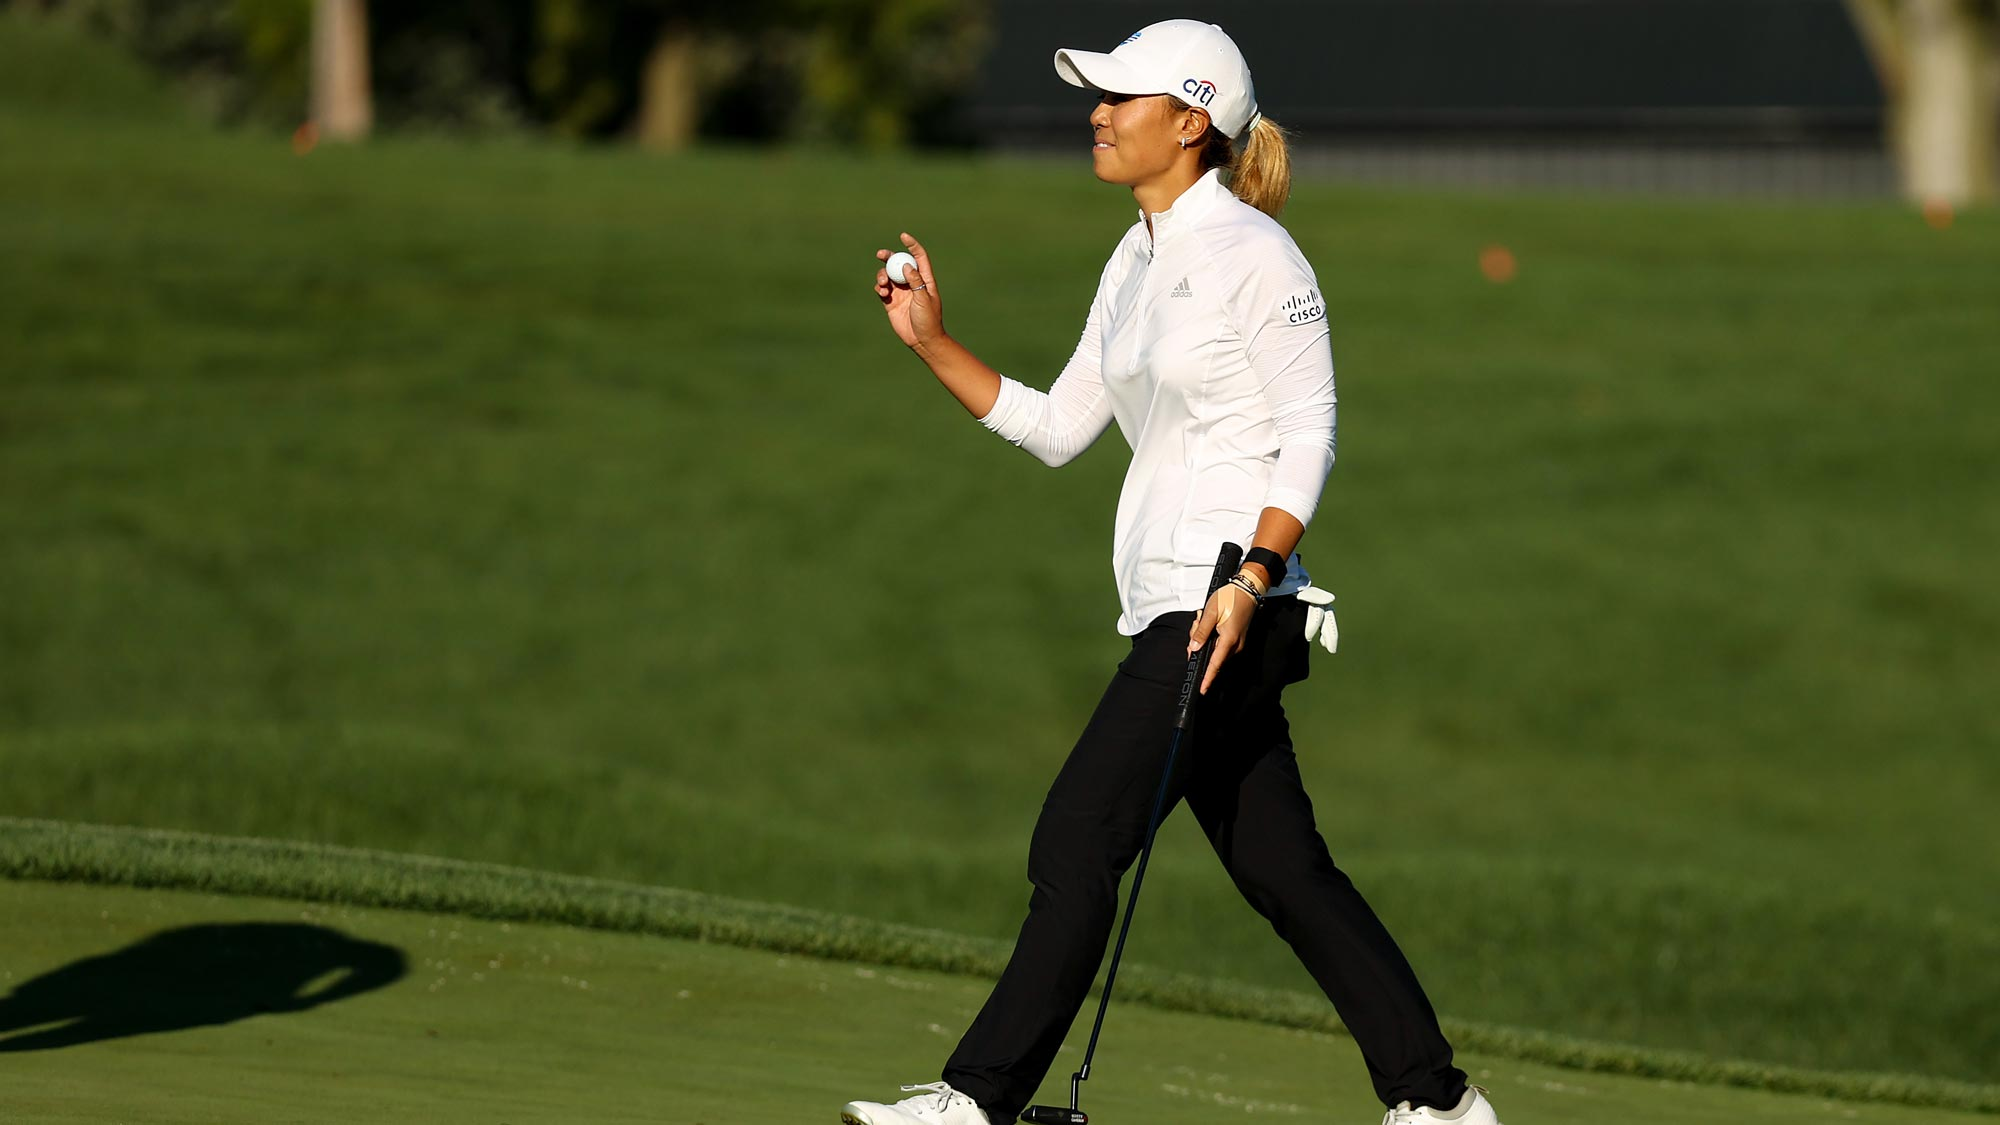 Danielle Kang retrieves her ball after putting for par on the 18th hole to win the LPGA Drive On Championship